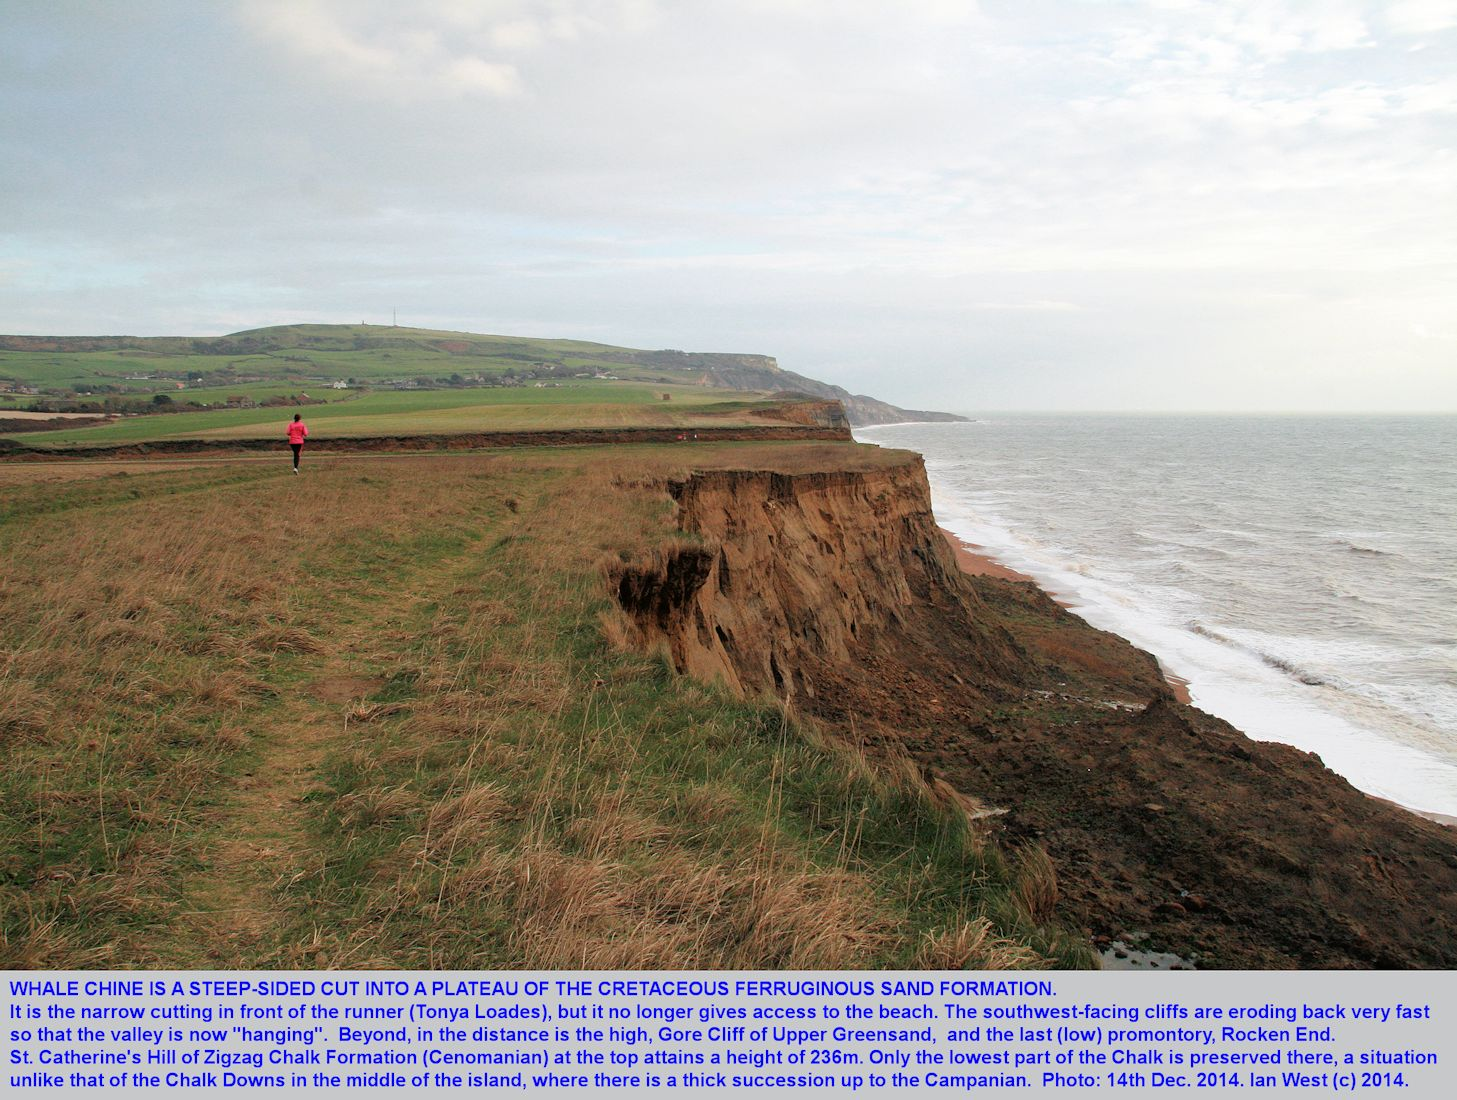 Whale Chine, a steep, incised valley, cut into a plateau of Ferruginous Sand Formation, being cut back by the sea, general view, southwest Isle of Wight, 14th December 2014